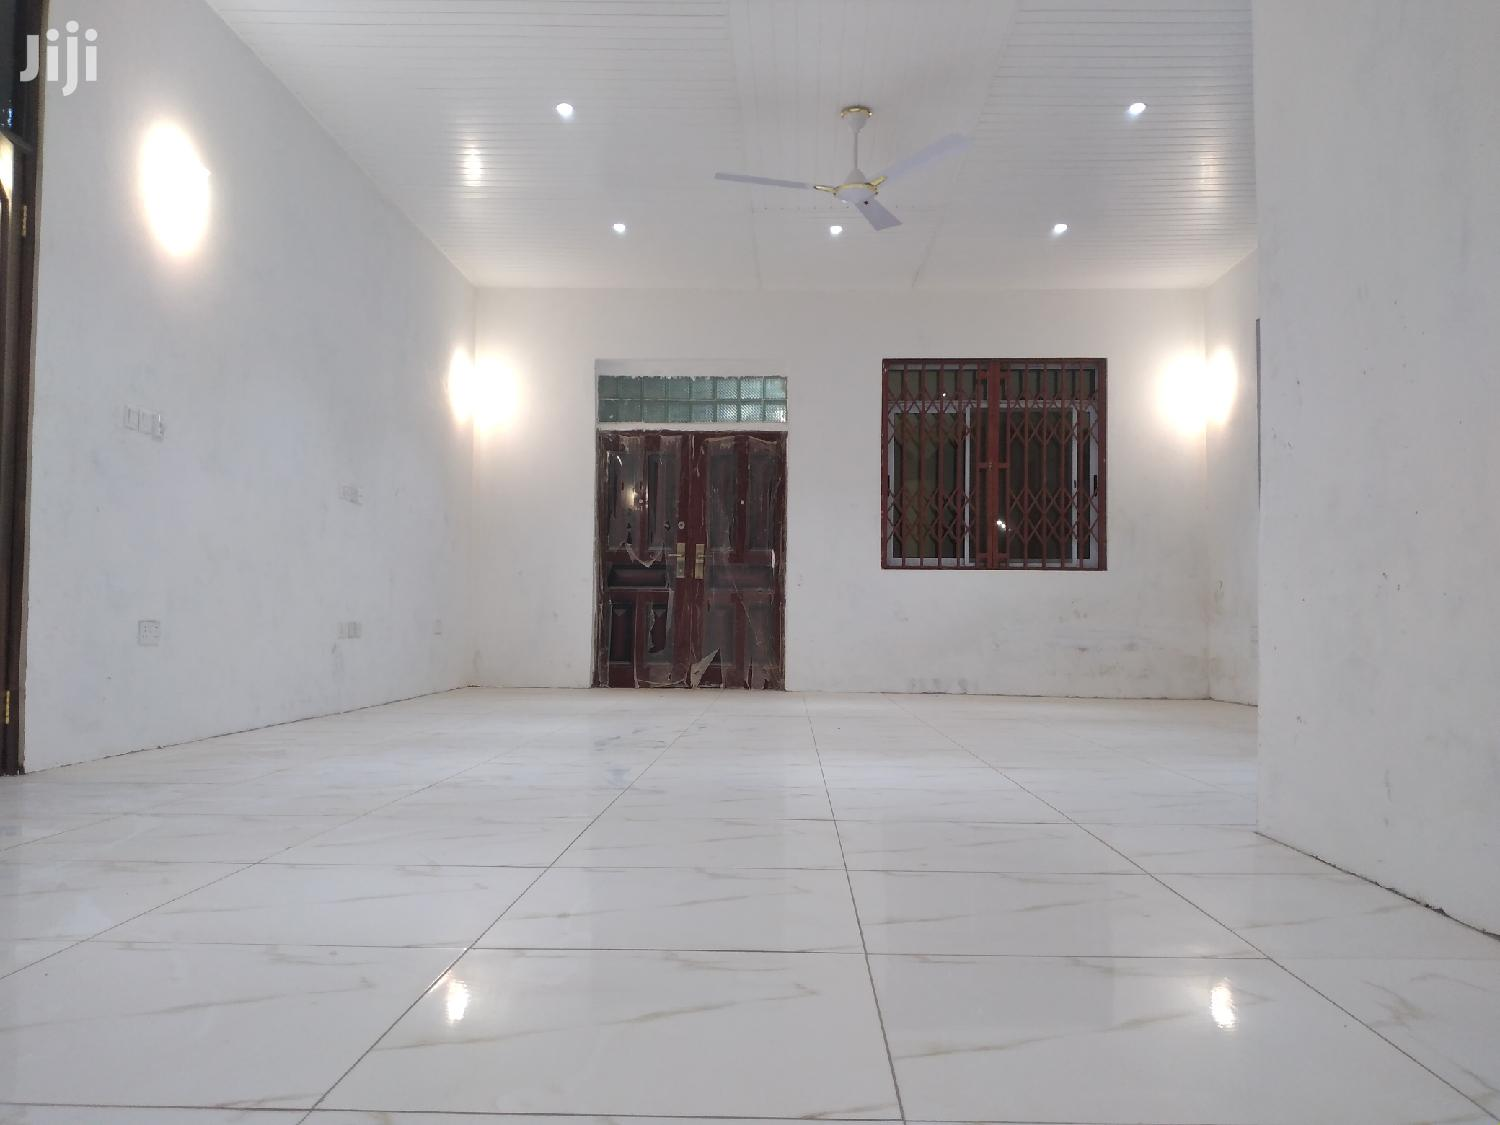 3 Bedrooms Apartment for Rent at Oyibi